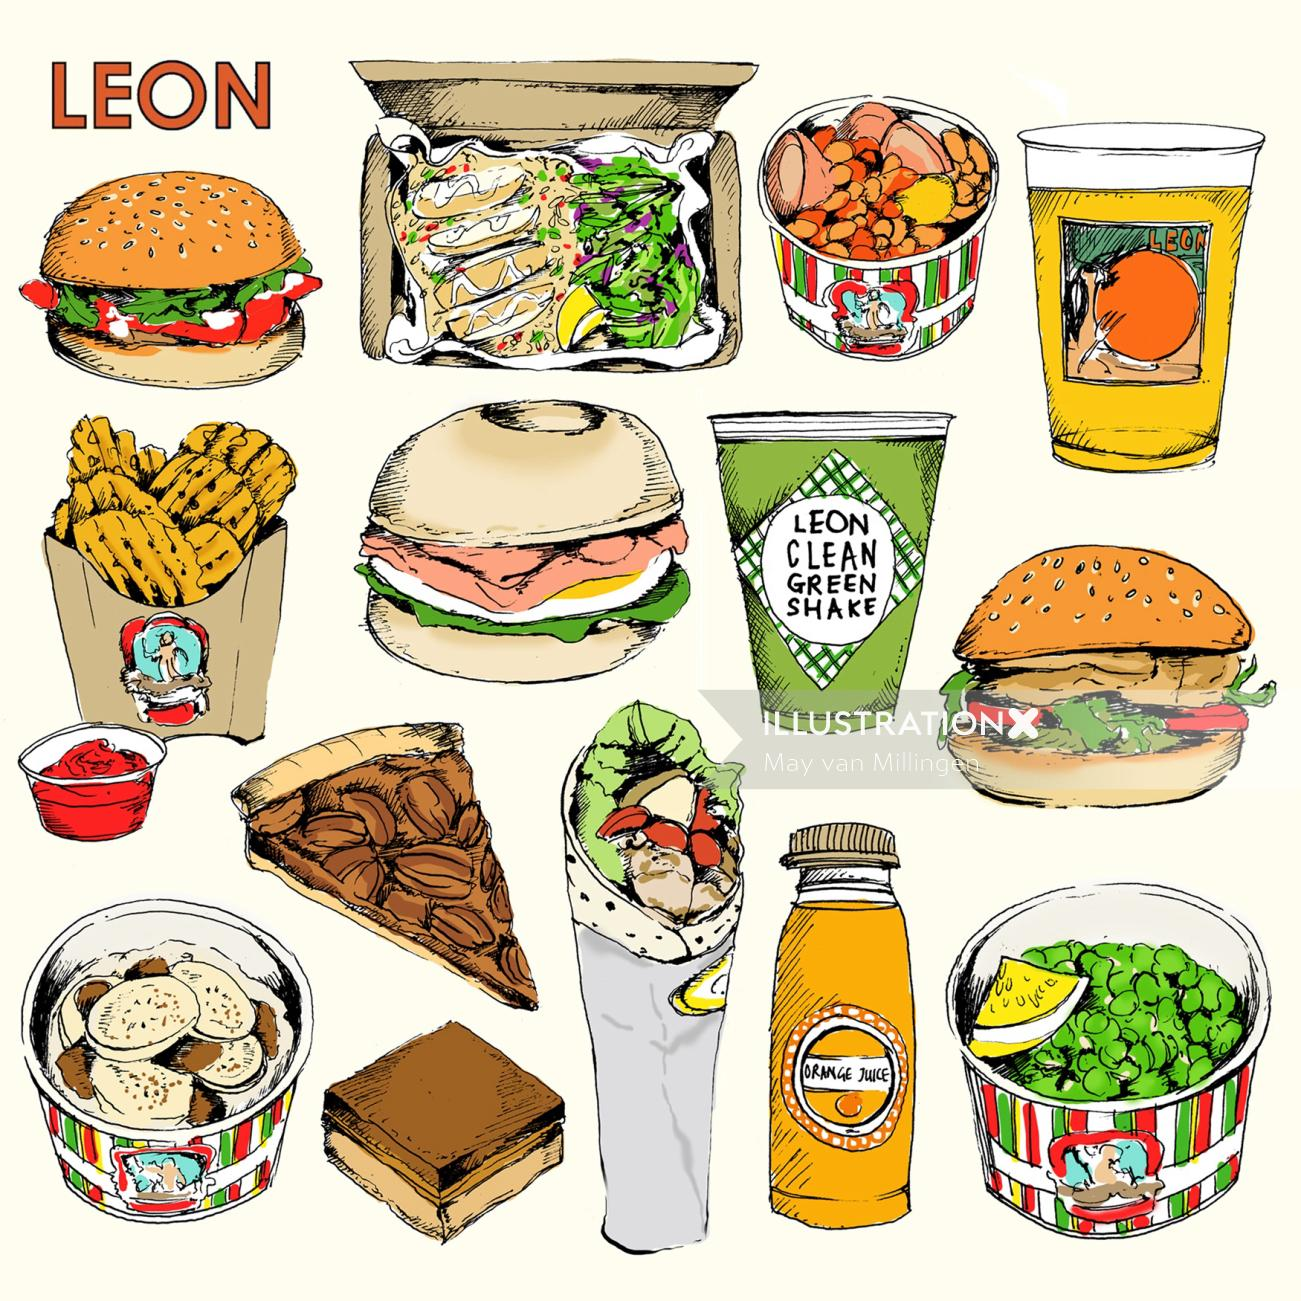 Leon product illustration by May van Millingen